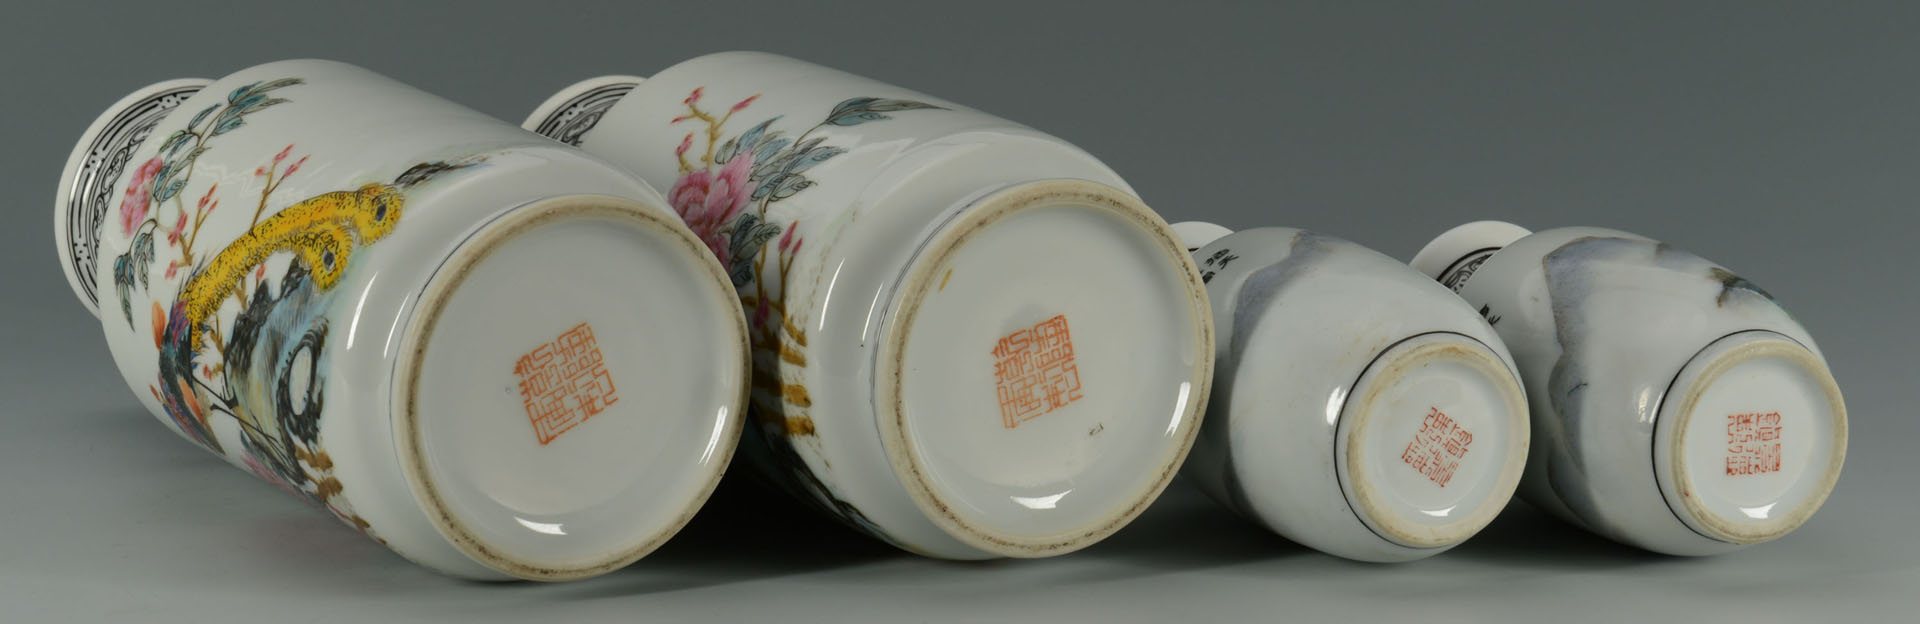 Lot 235: Set of 4 Chinese Republic Vases, birds of paradise